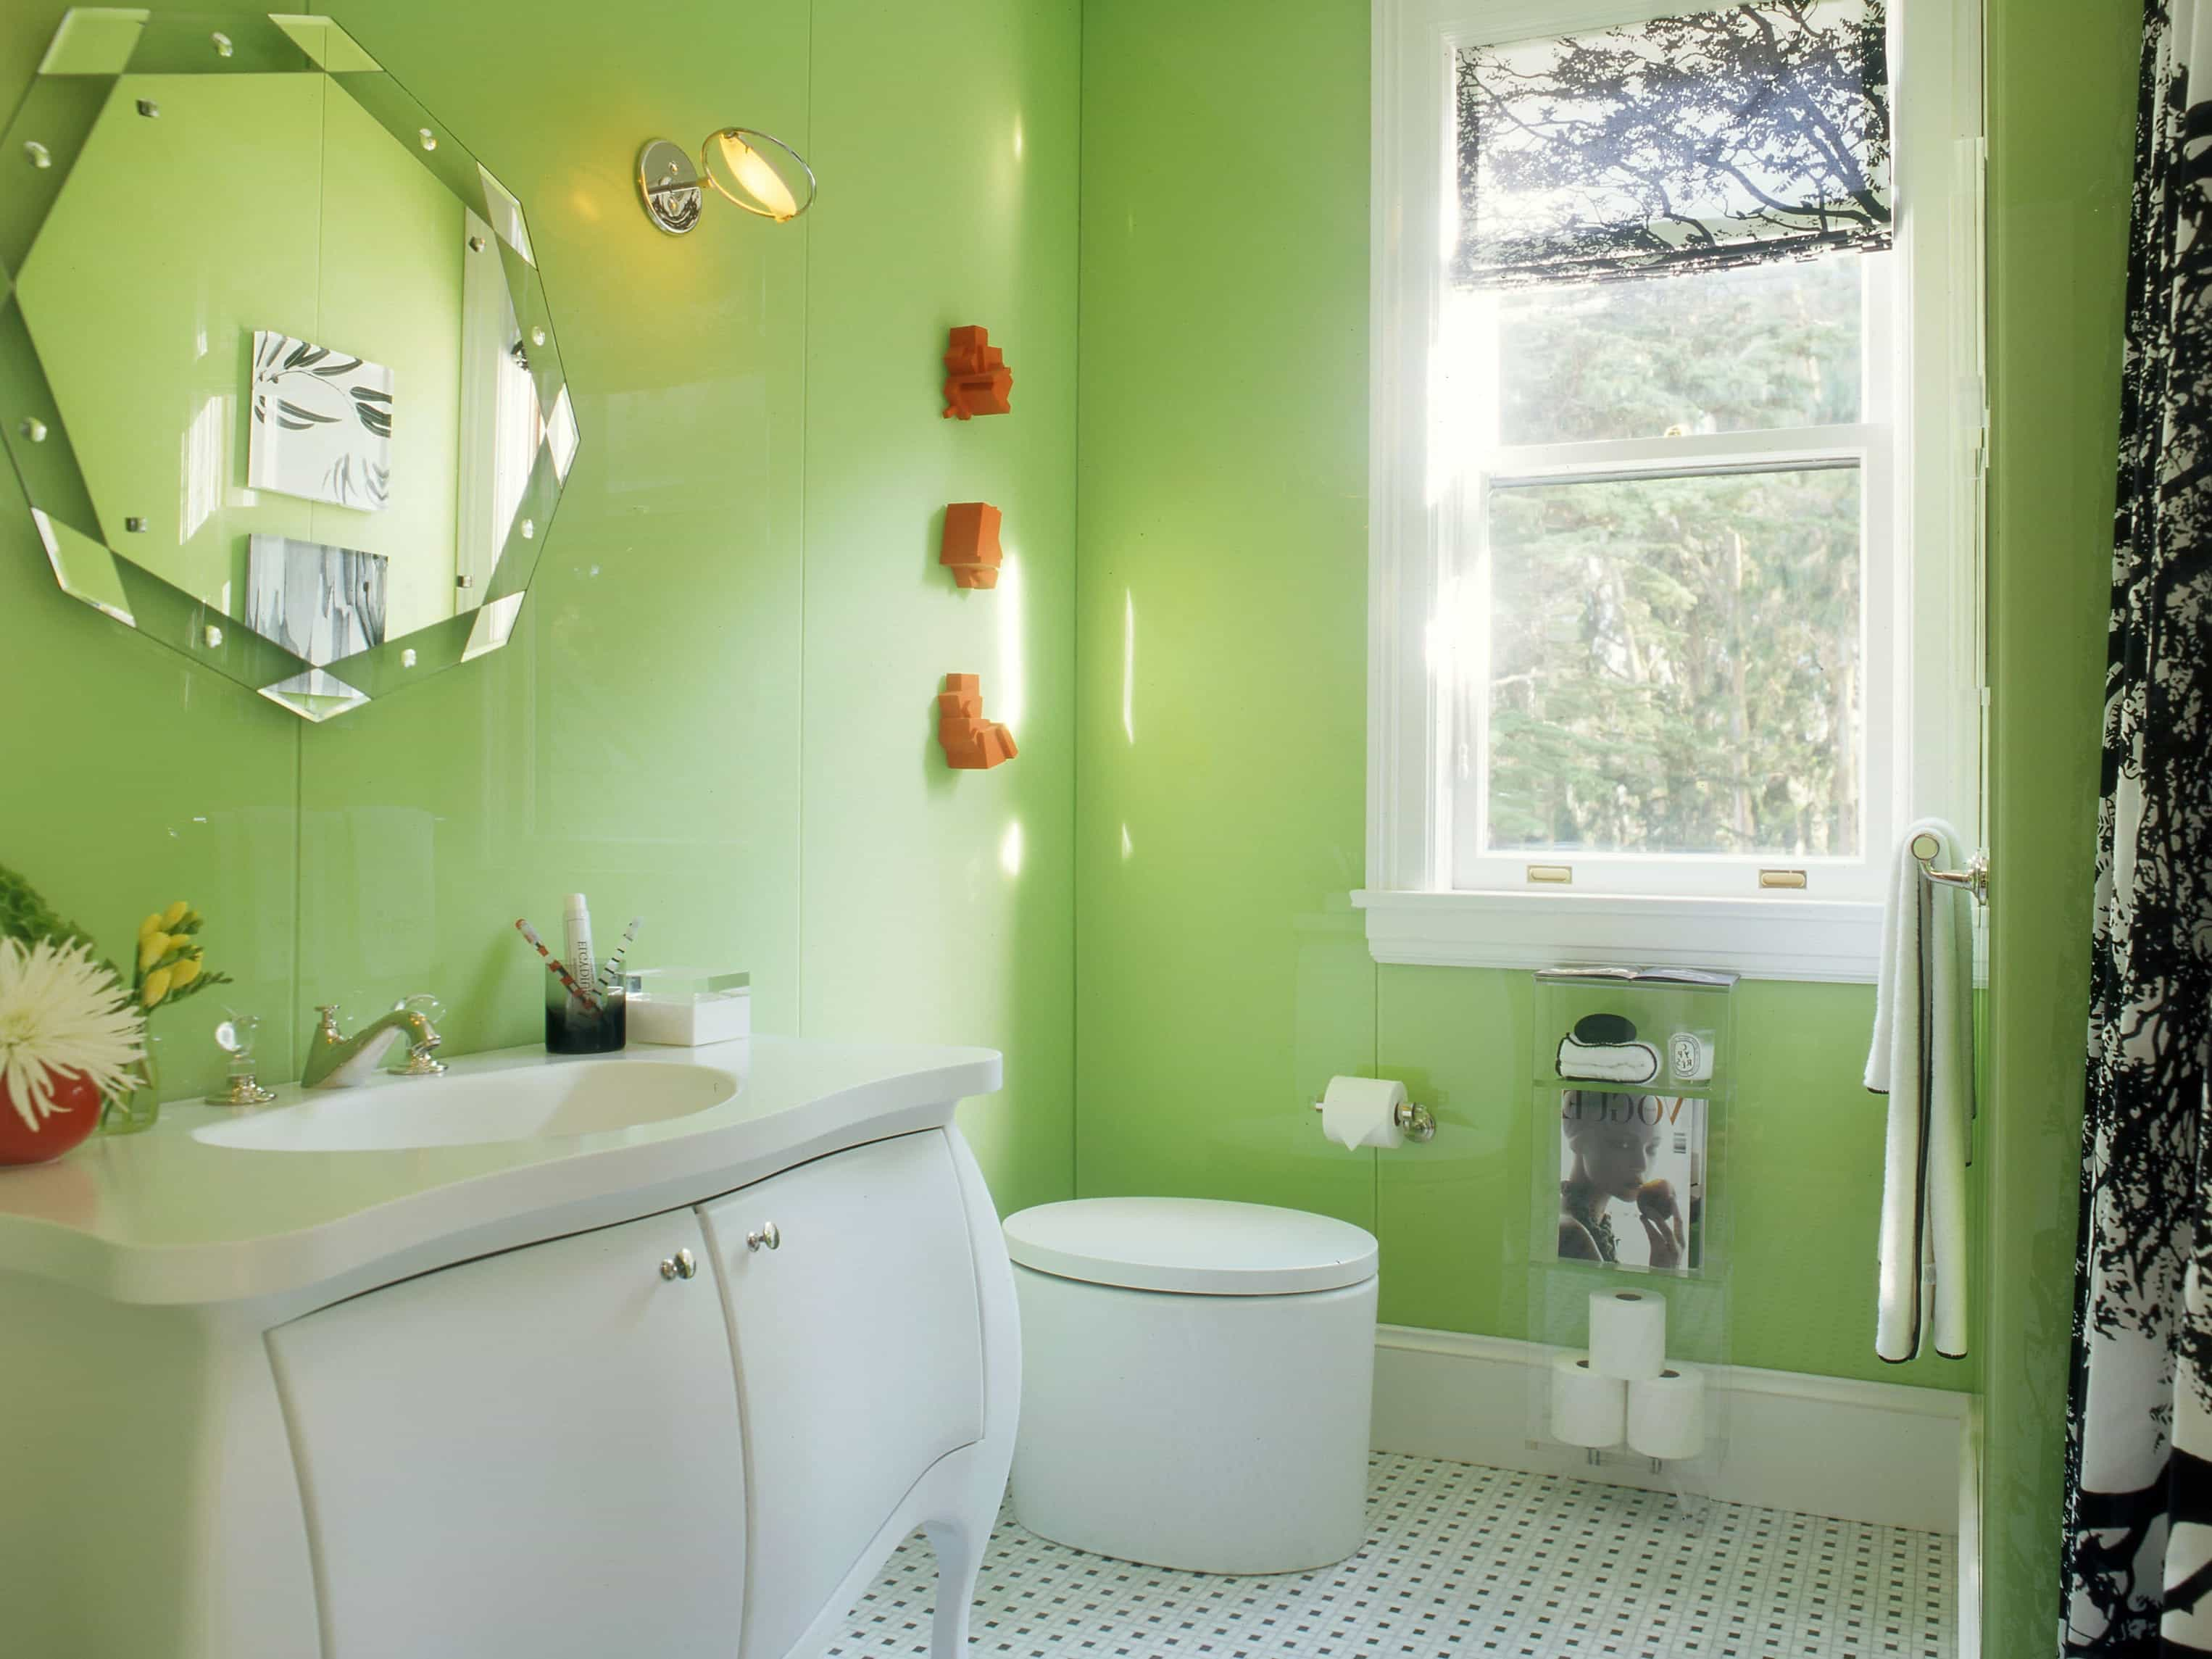 Modern Bathroom Sparkles With Bright Apple Green Walls (Image 10 of 12)